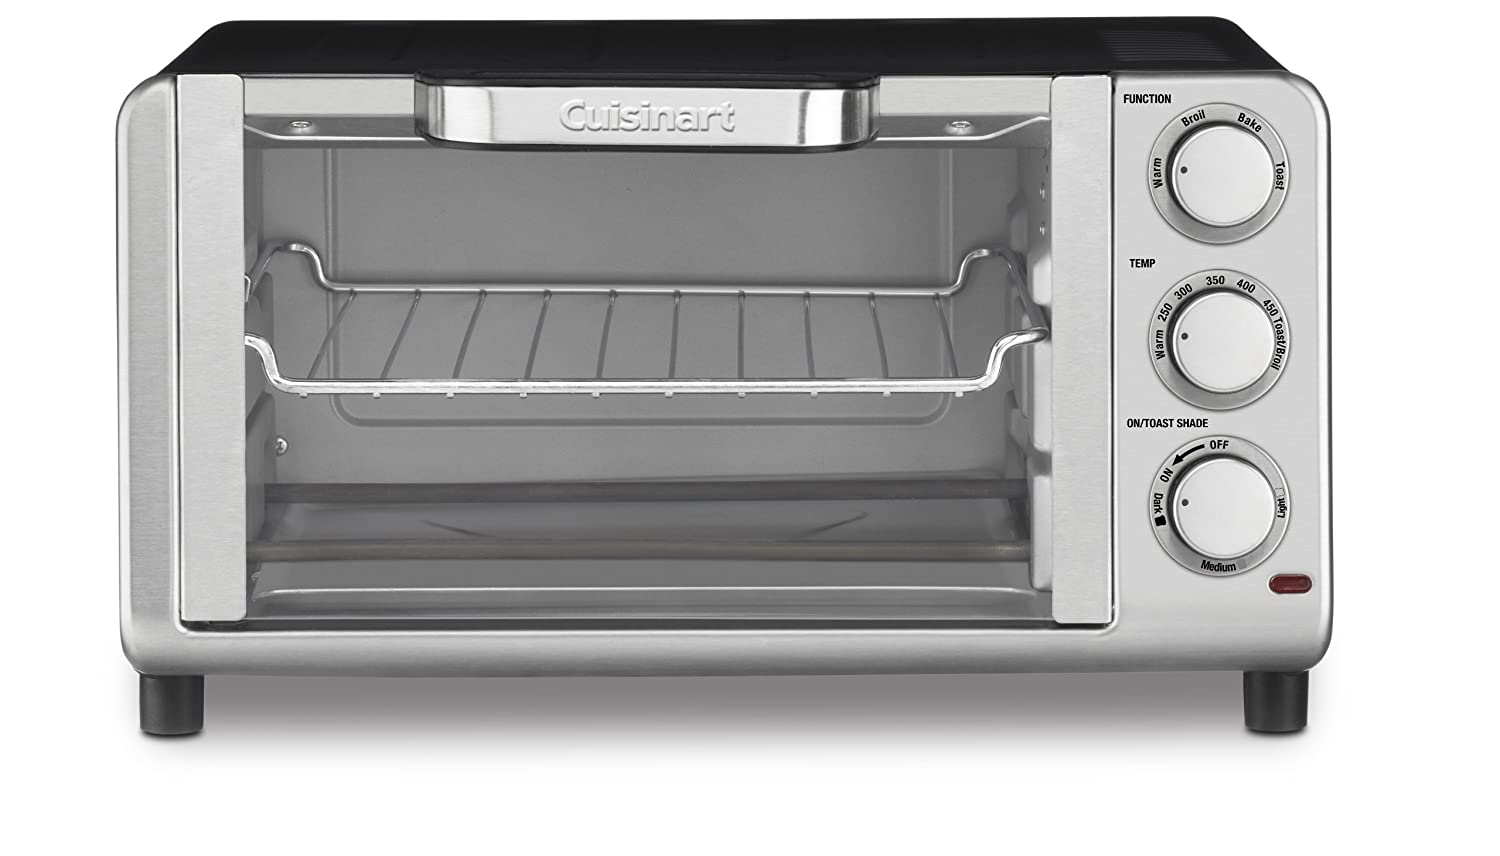 Cuisinart Tob 80 Compact Toaster Oven Broiler New Free